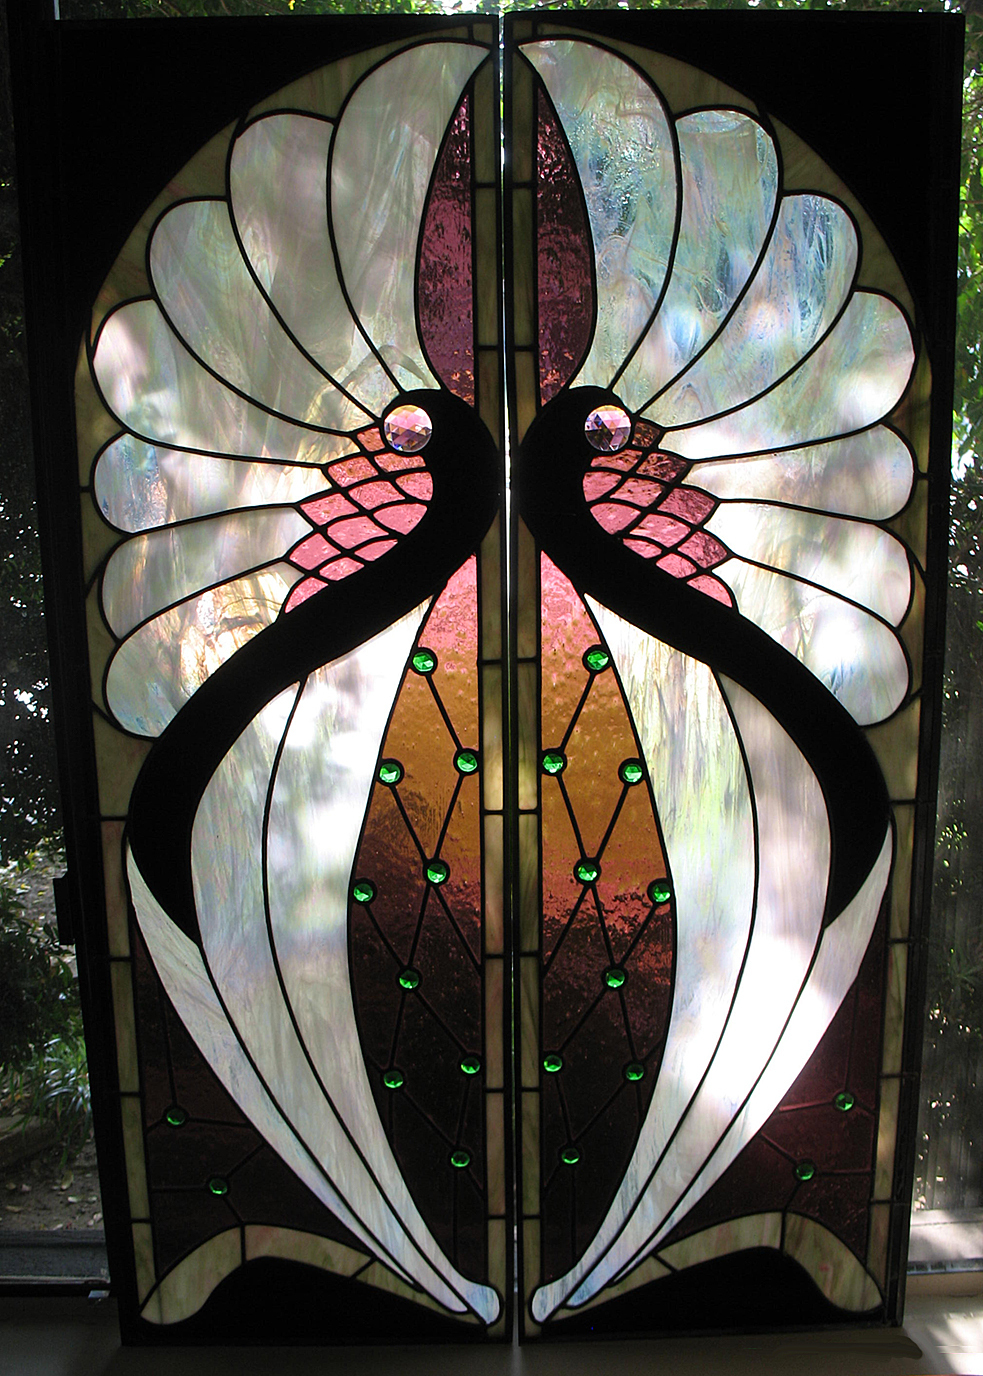 Stained Glass Window Art : Window glass art deco stained